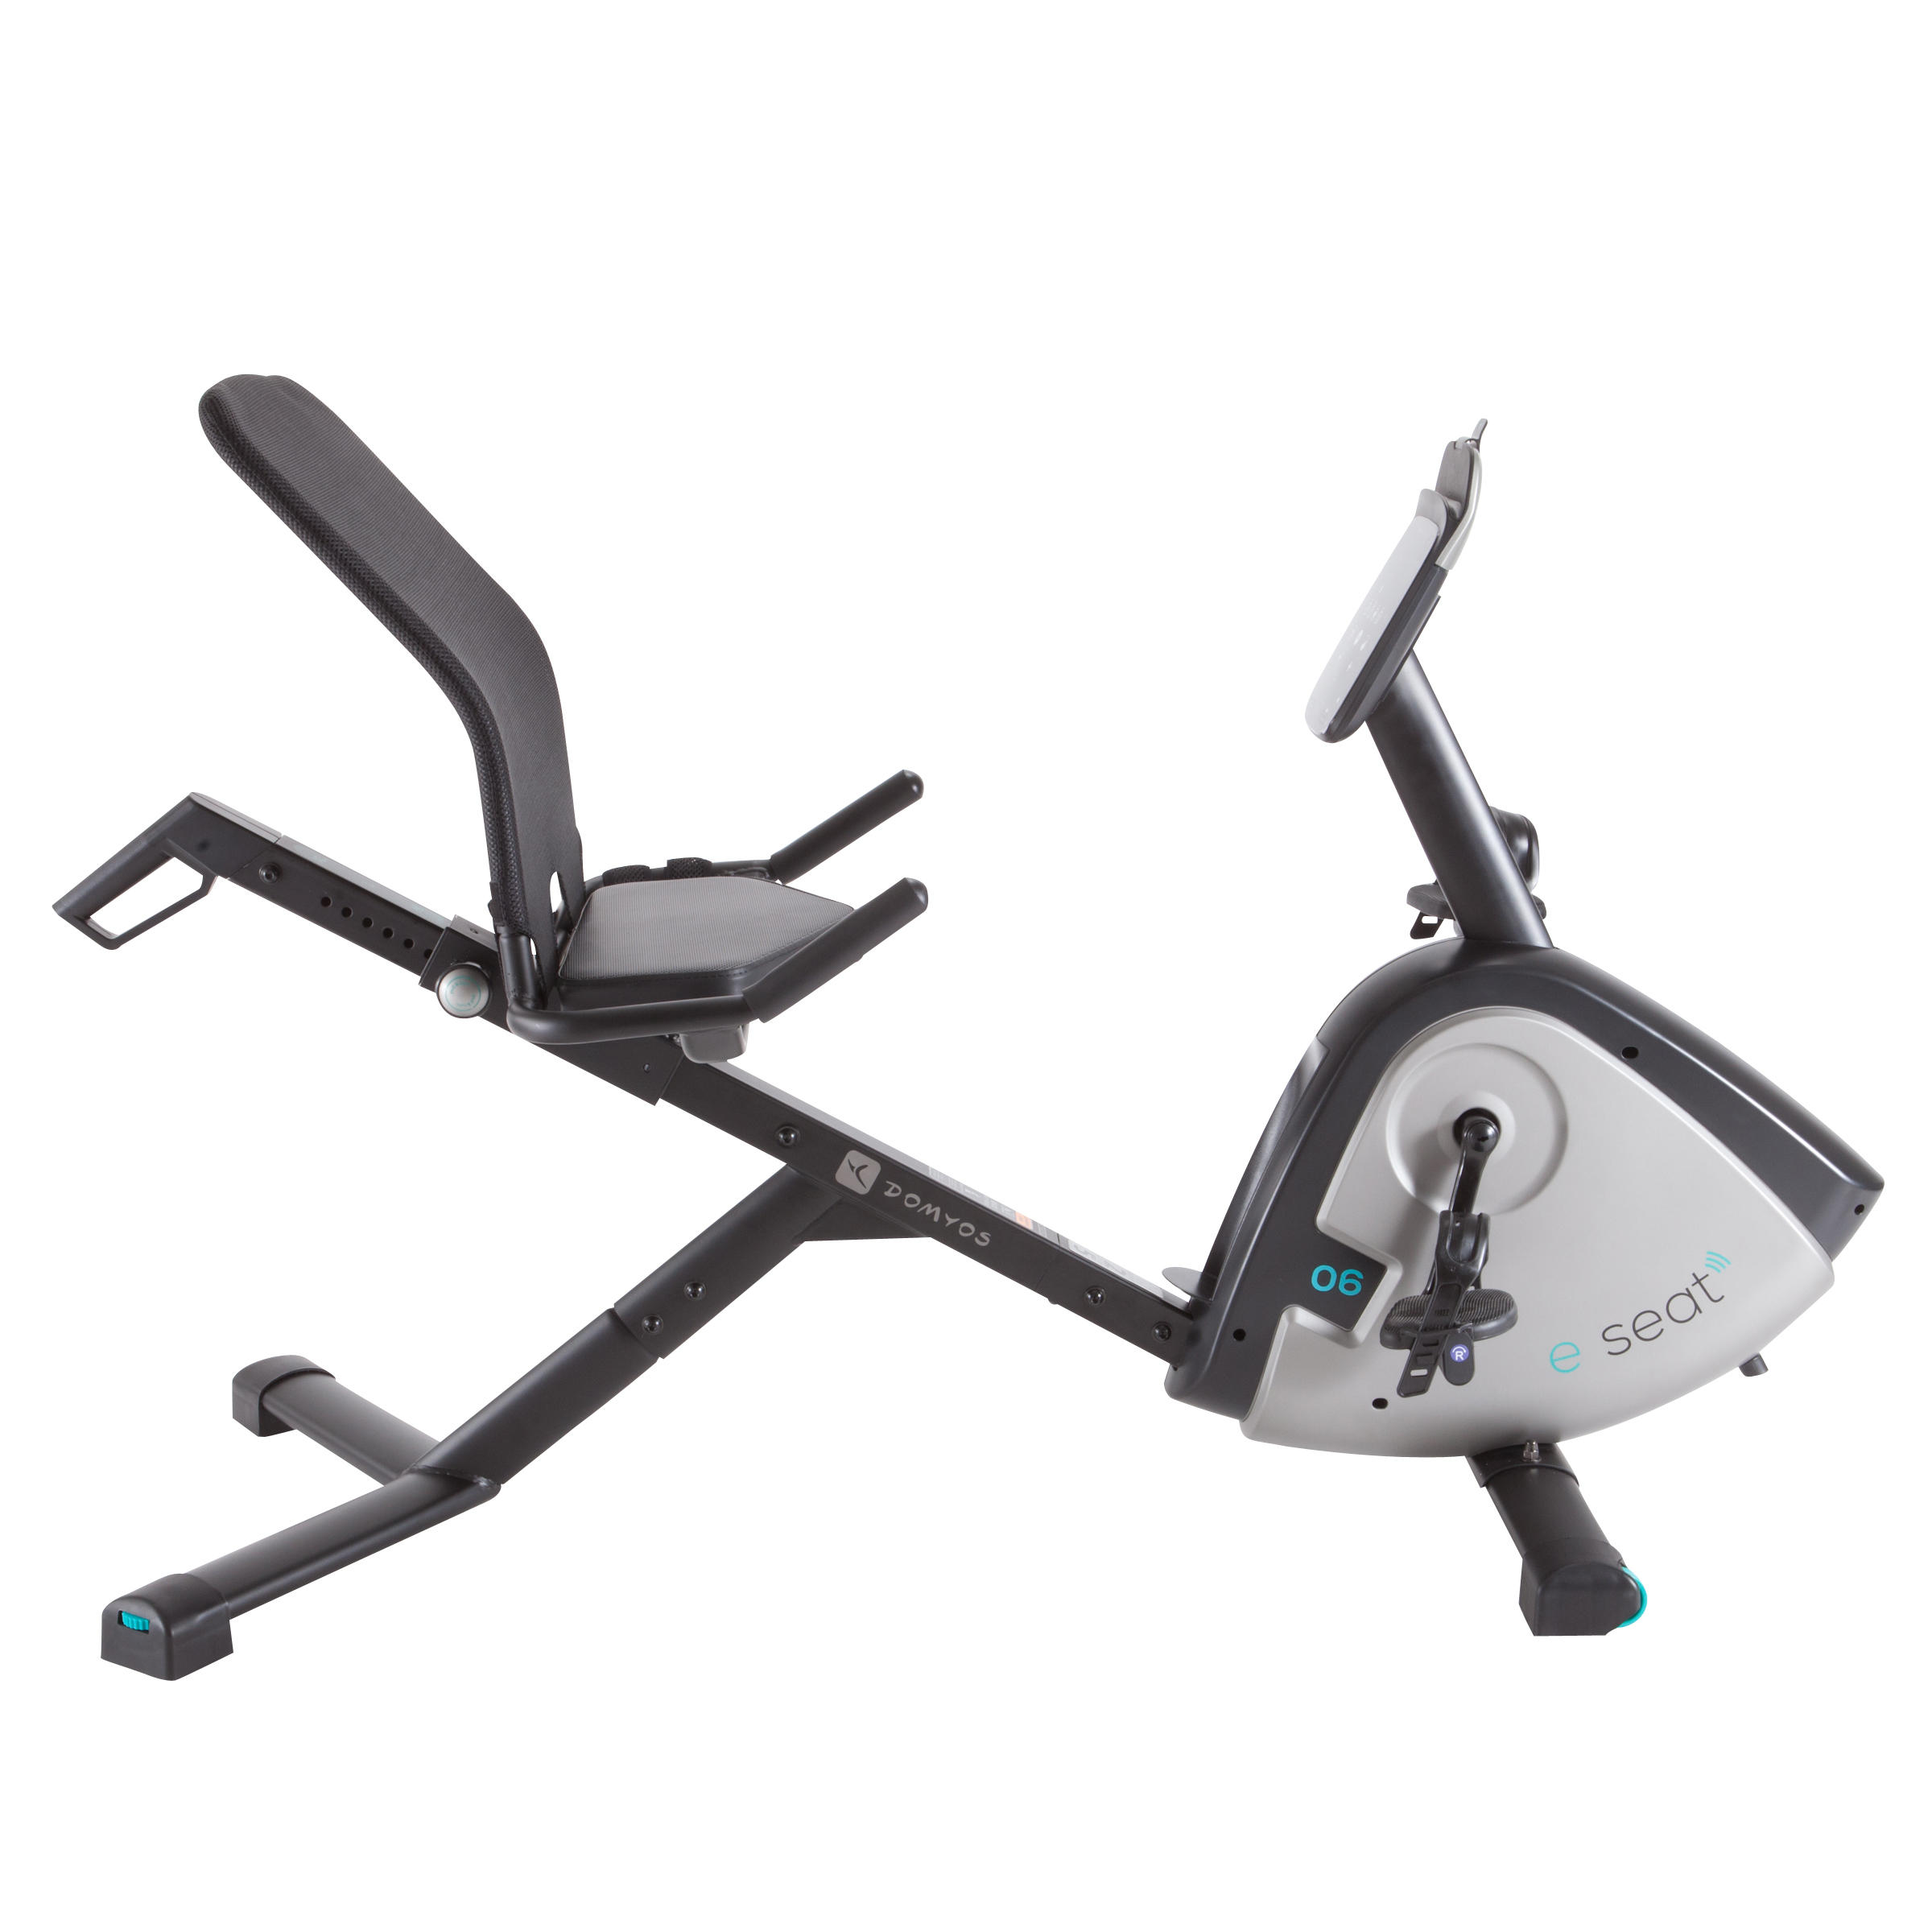 E Seat Exercise Bike